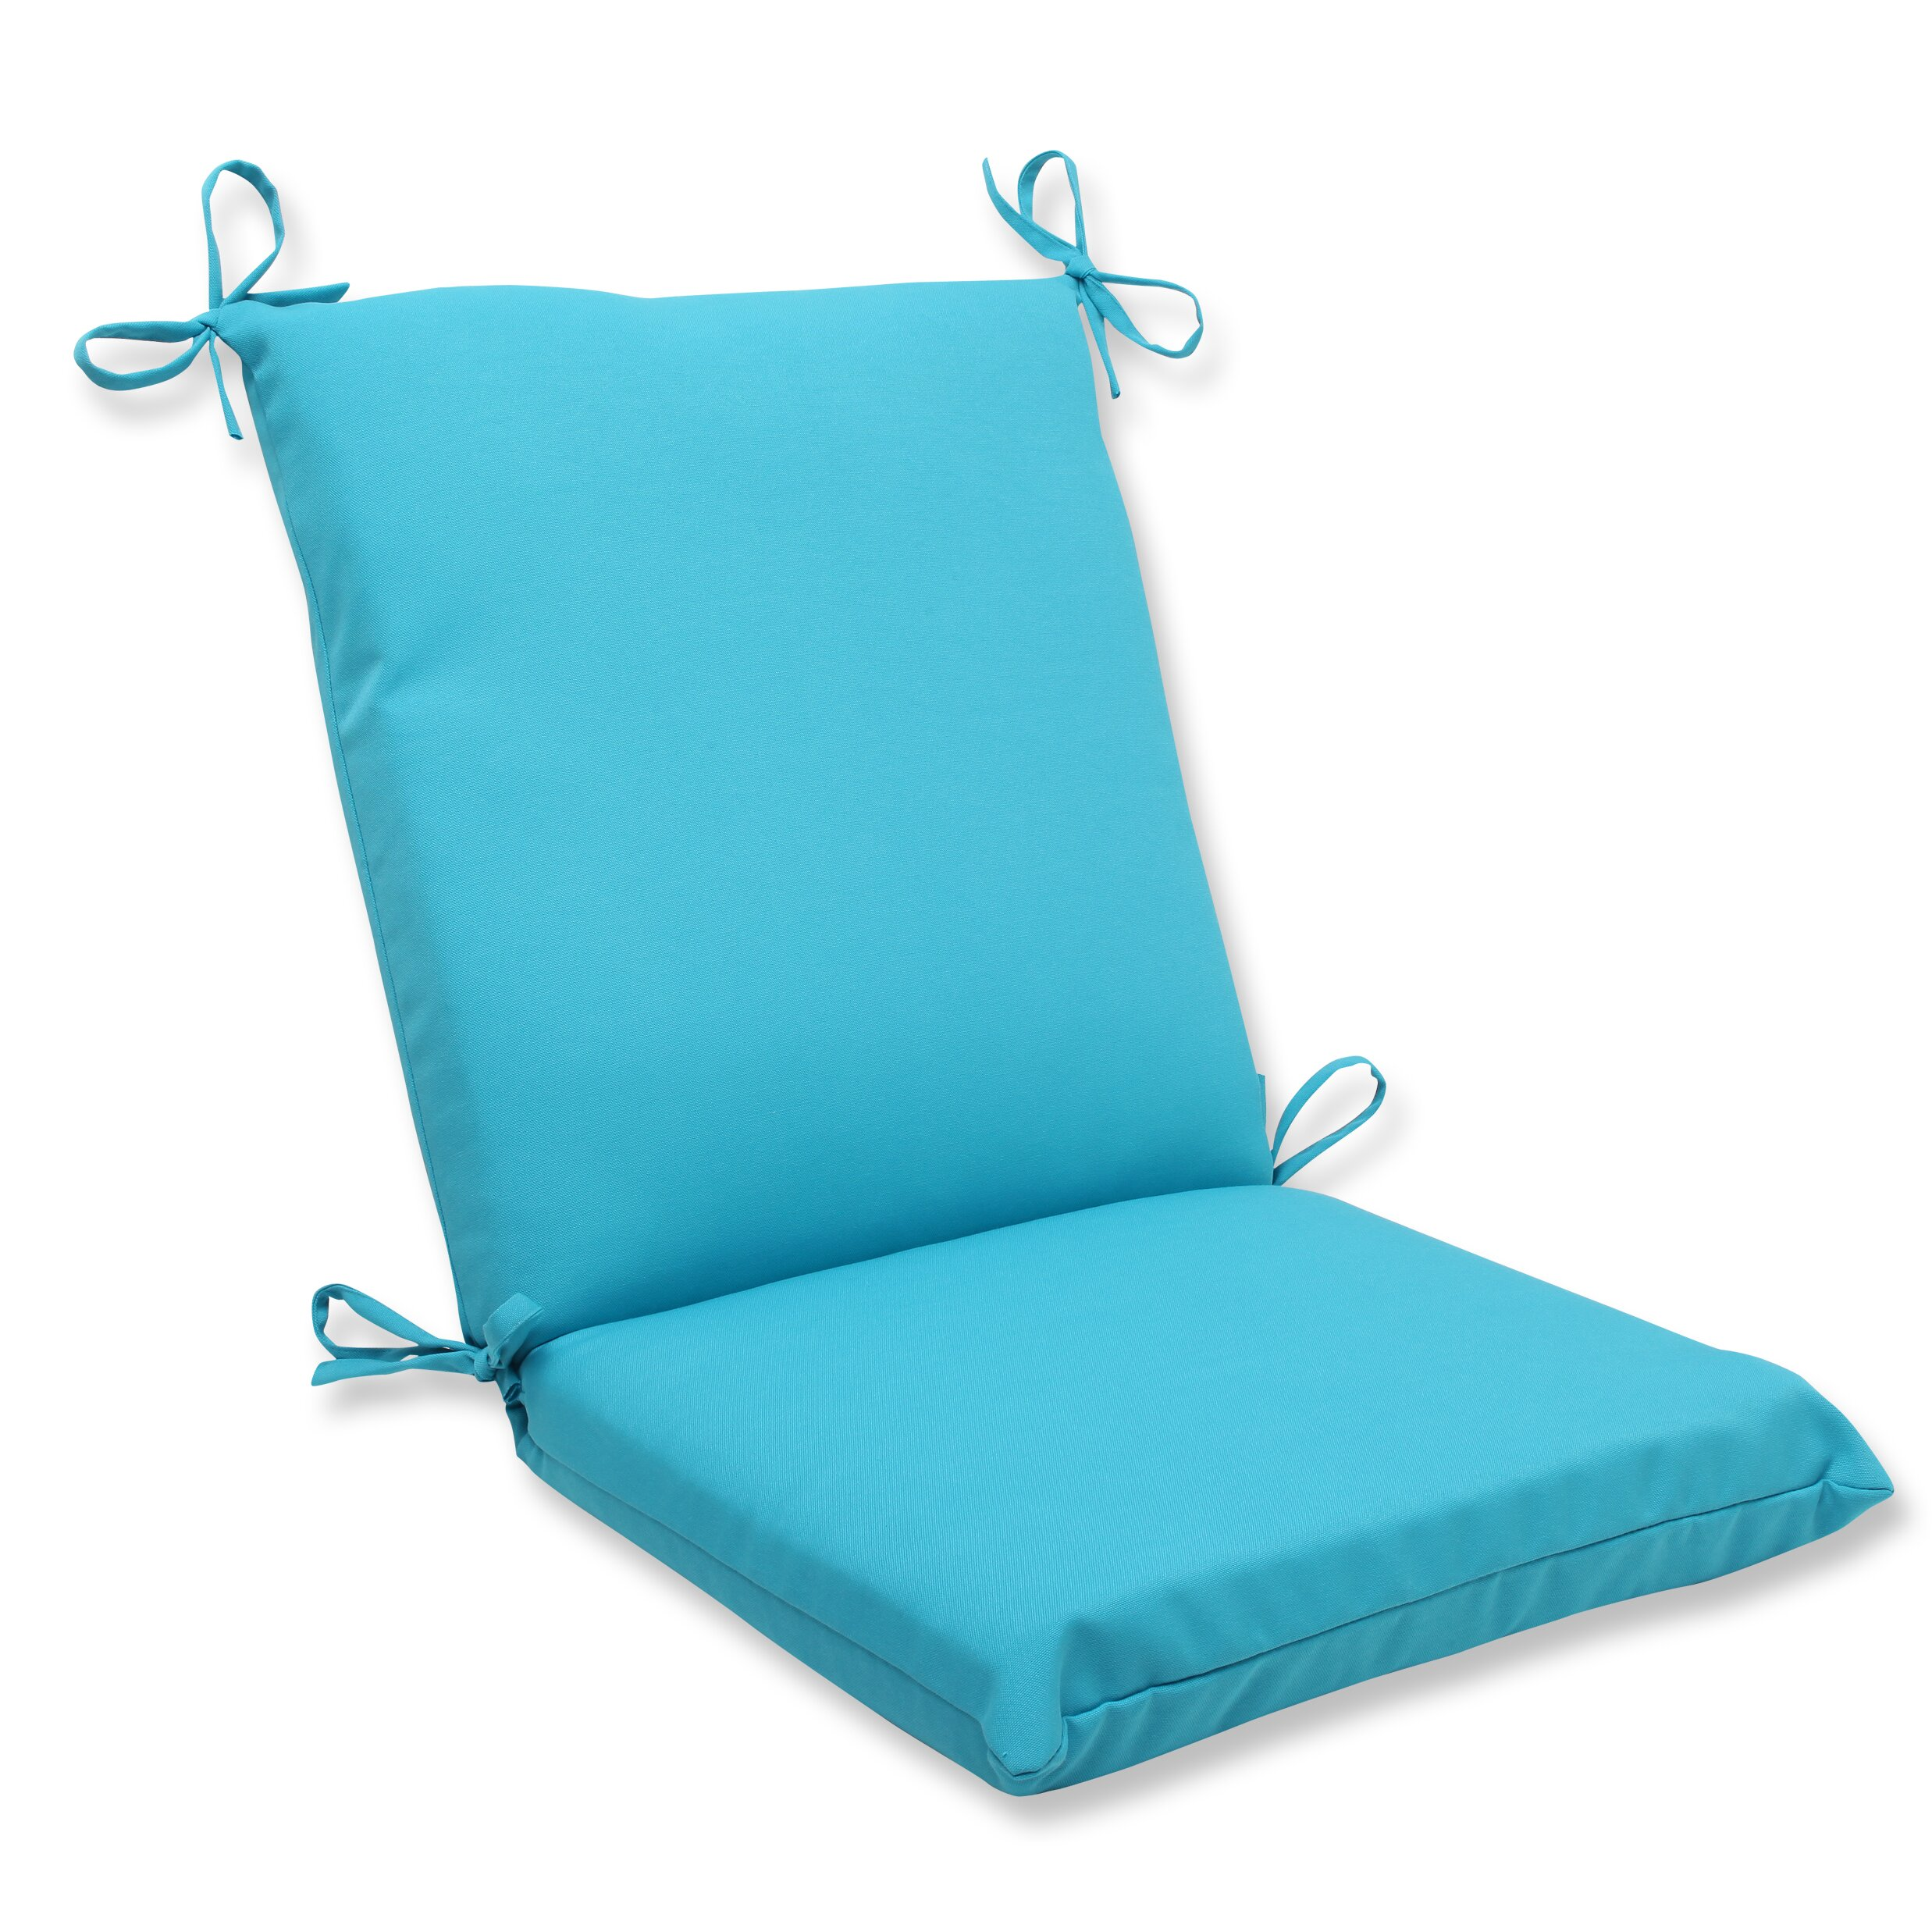 Pillow perfect veranda outdoor lounge chair cushion for Chair pillow